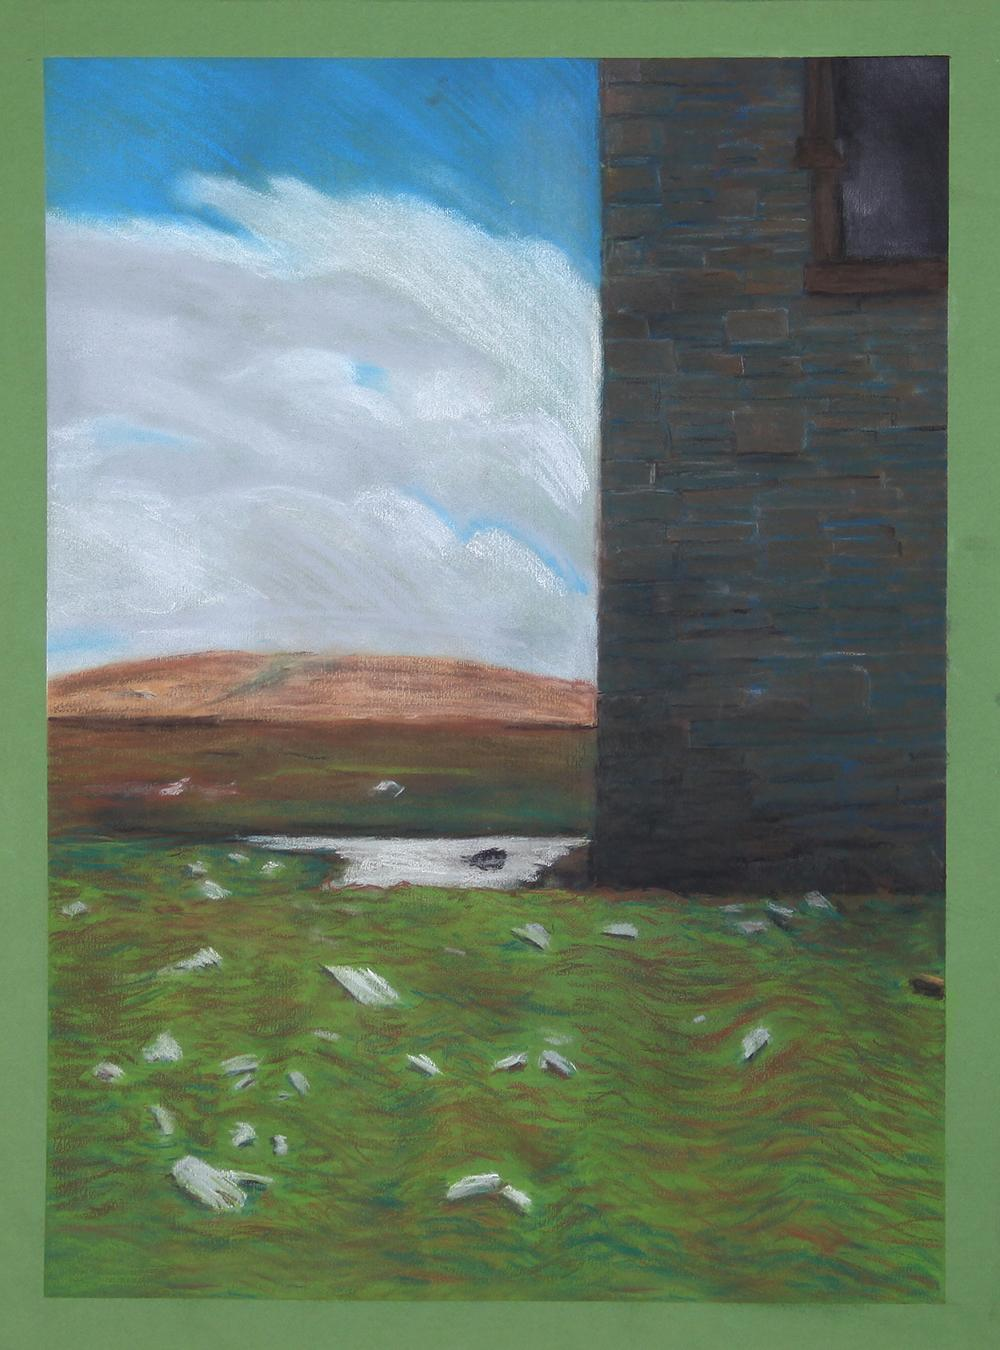 A old tower with sky, peat moss bog, and water,